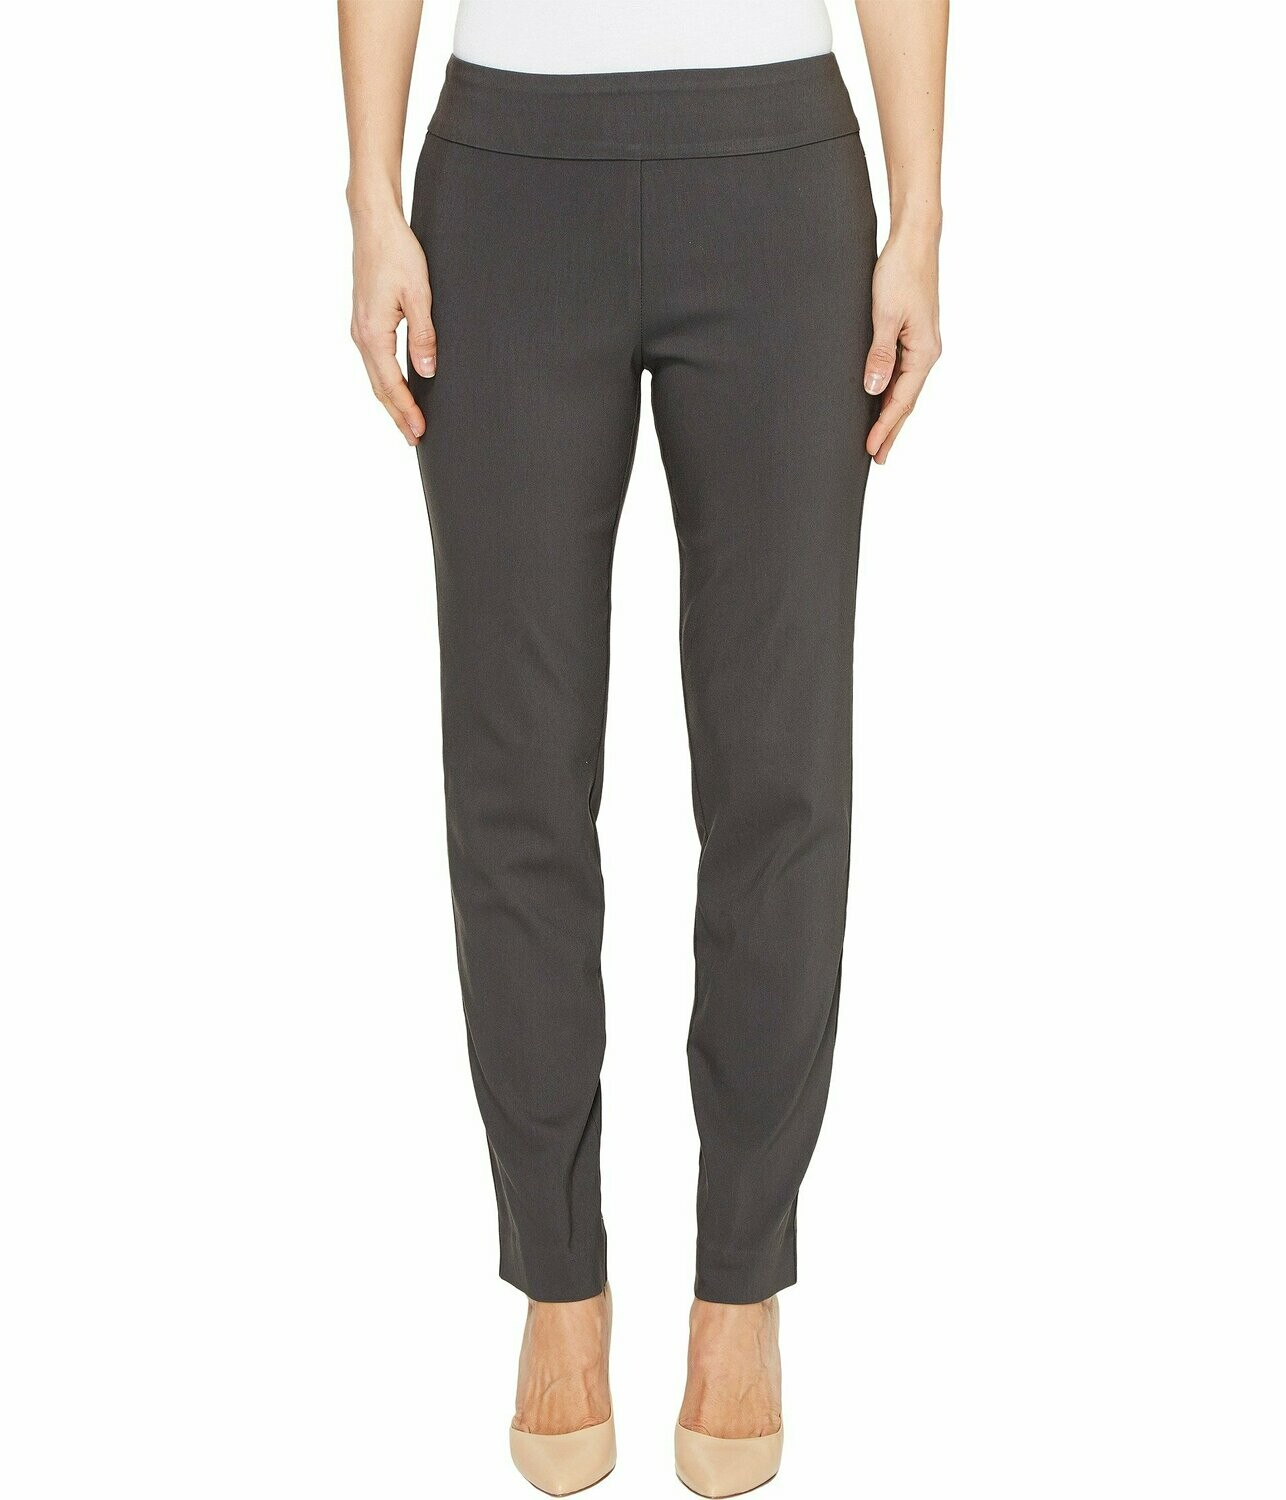 "P507 28"" Ankle Pant Grey"